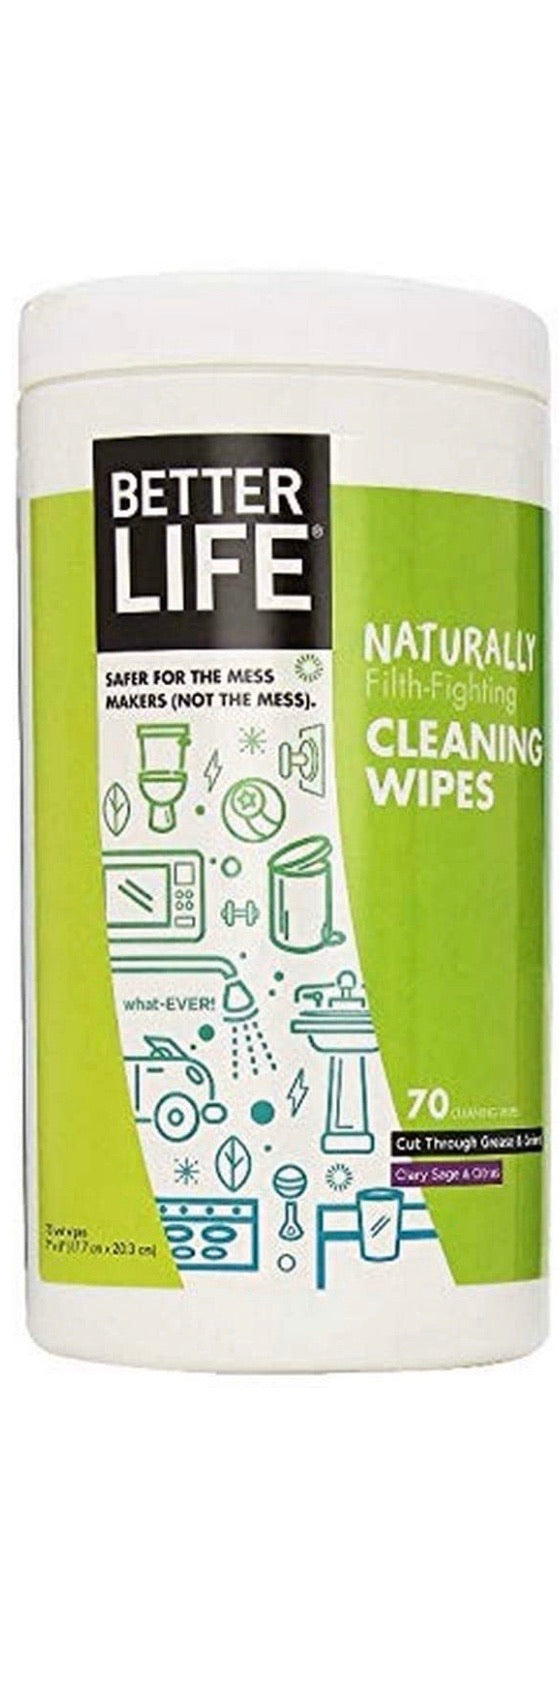 Better Life Naturally Cleaning Wipes Clary Sage and Citrus